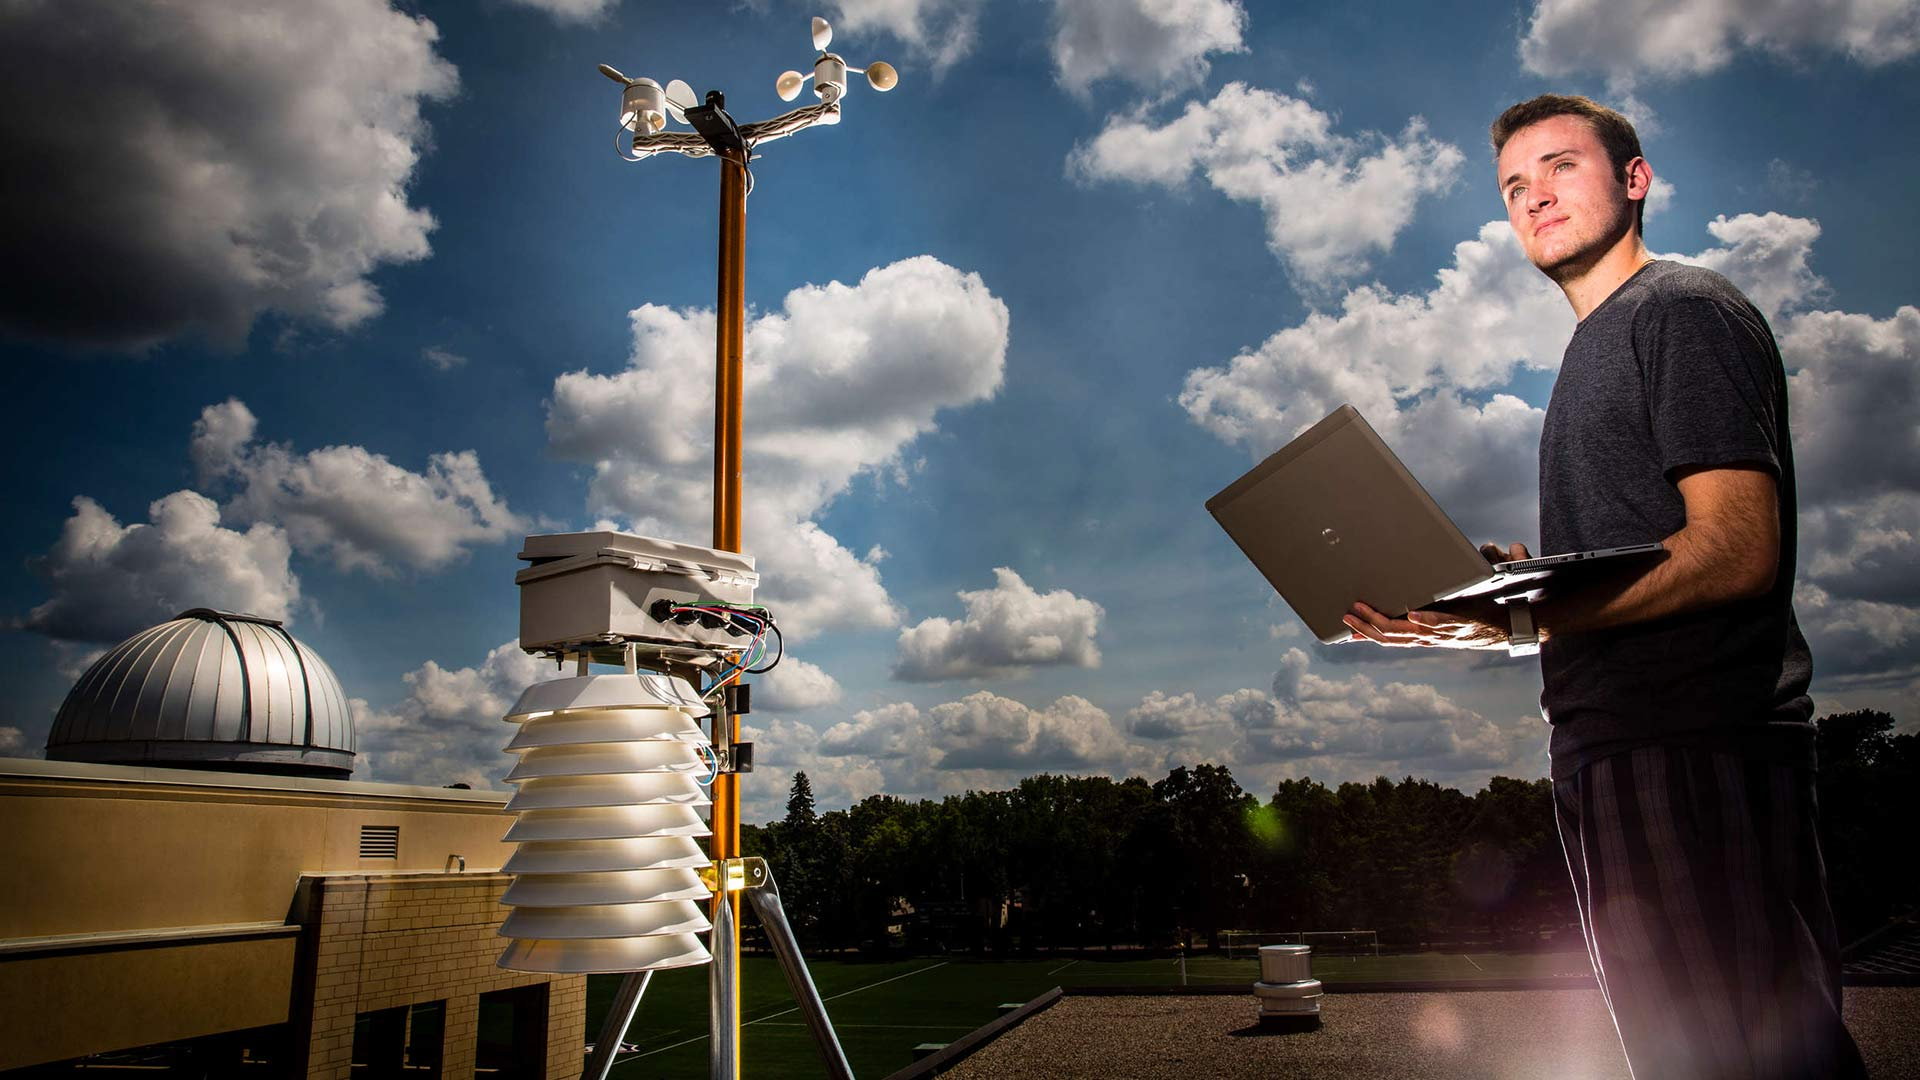 A engineering student stands next to the weather station project.